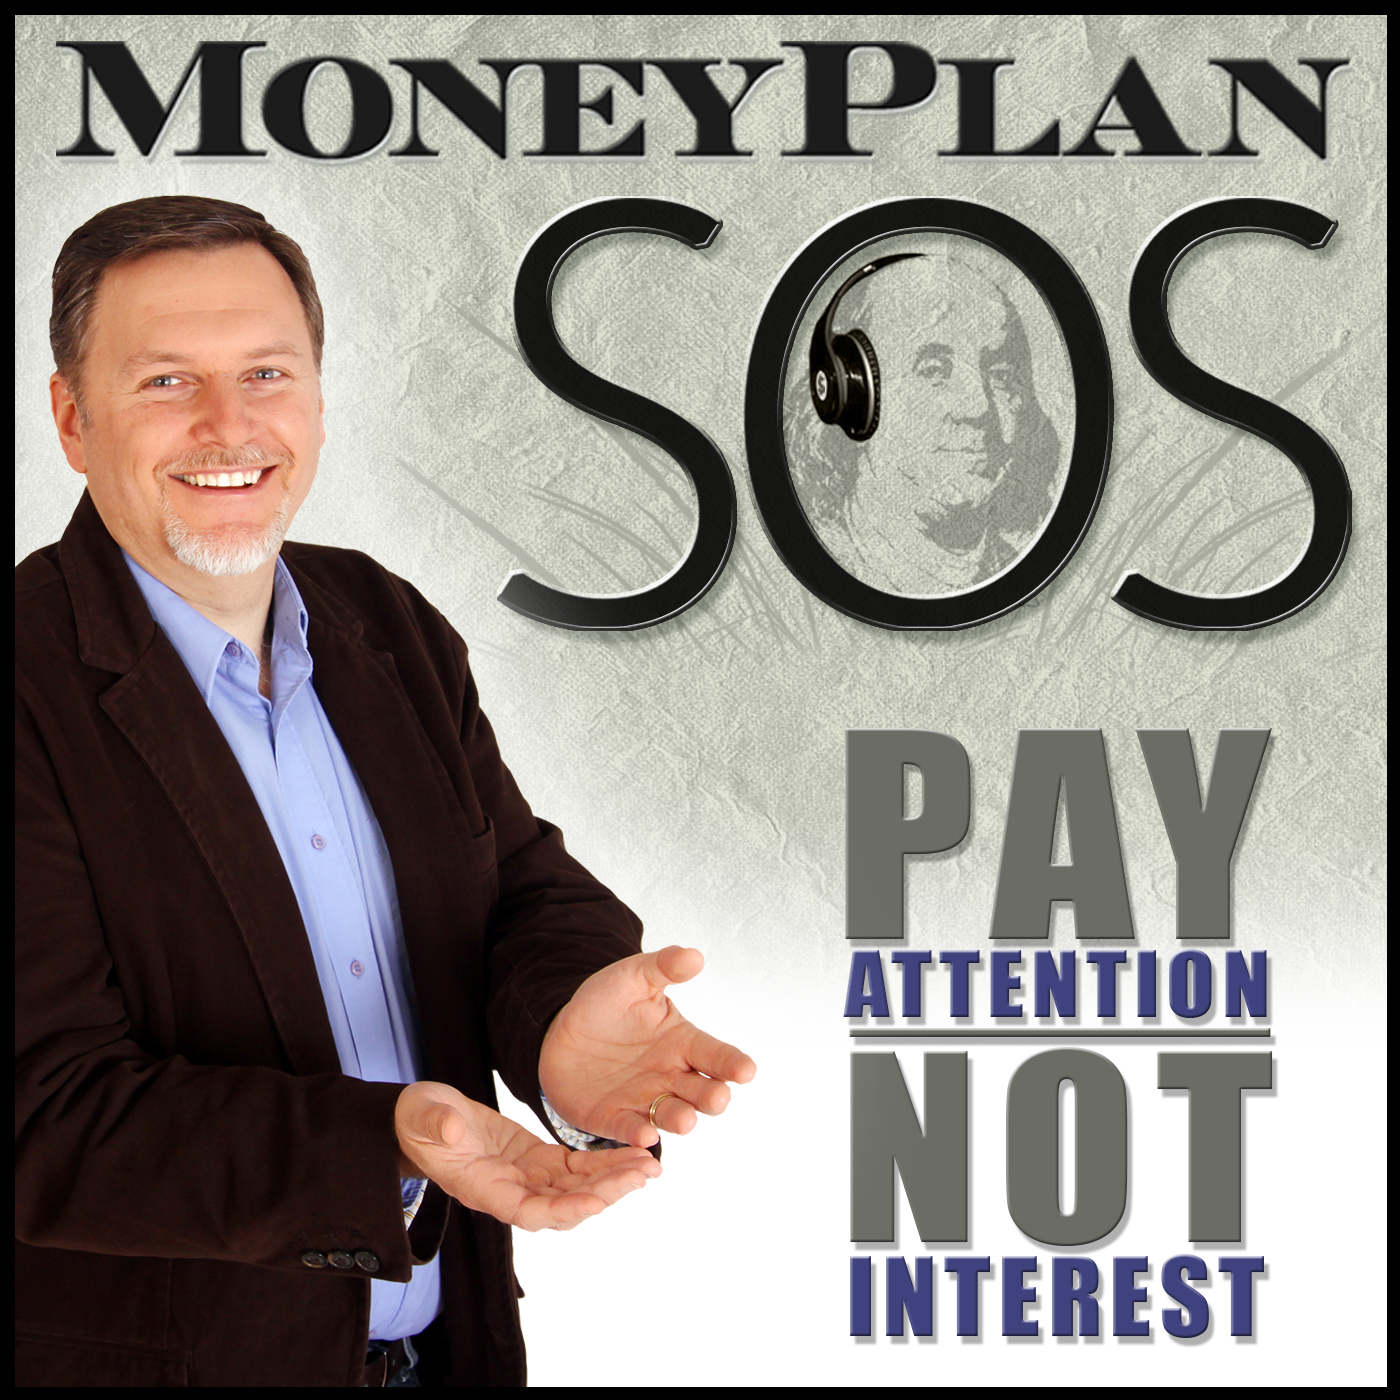 MoneyPlan SOS | Build Wealth | Get out of debt | Pay attention, not interest